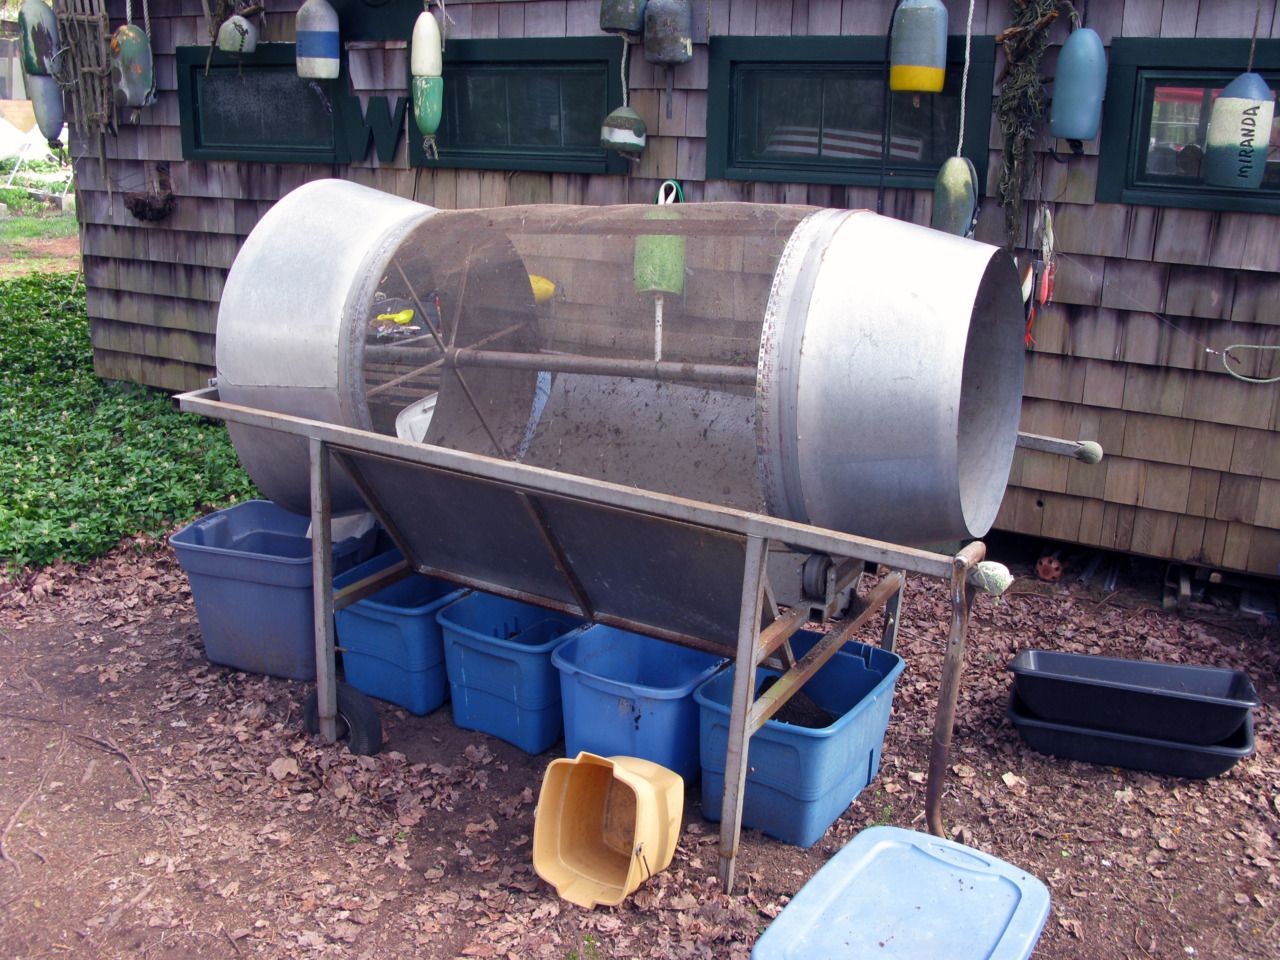 This Electric Tumbler Sifts High Volumes Of Compost Separating The Precious Worm Castings Collected In Plastic Bins Below From Debris That